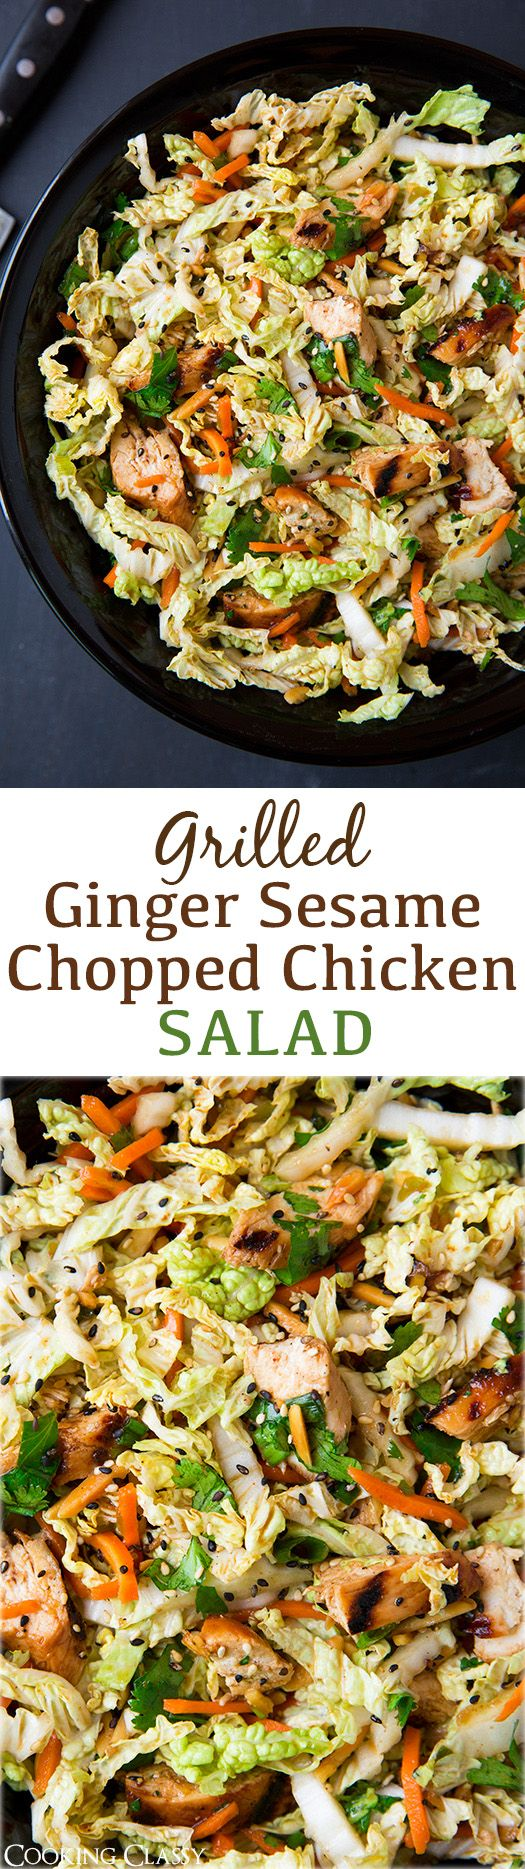 Most Pinned Salad Recipe on Pinterest 7